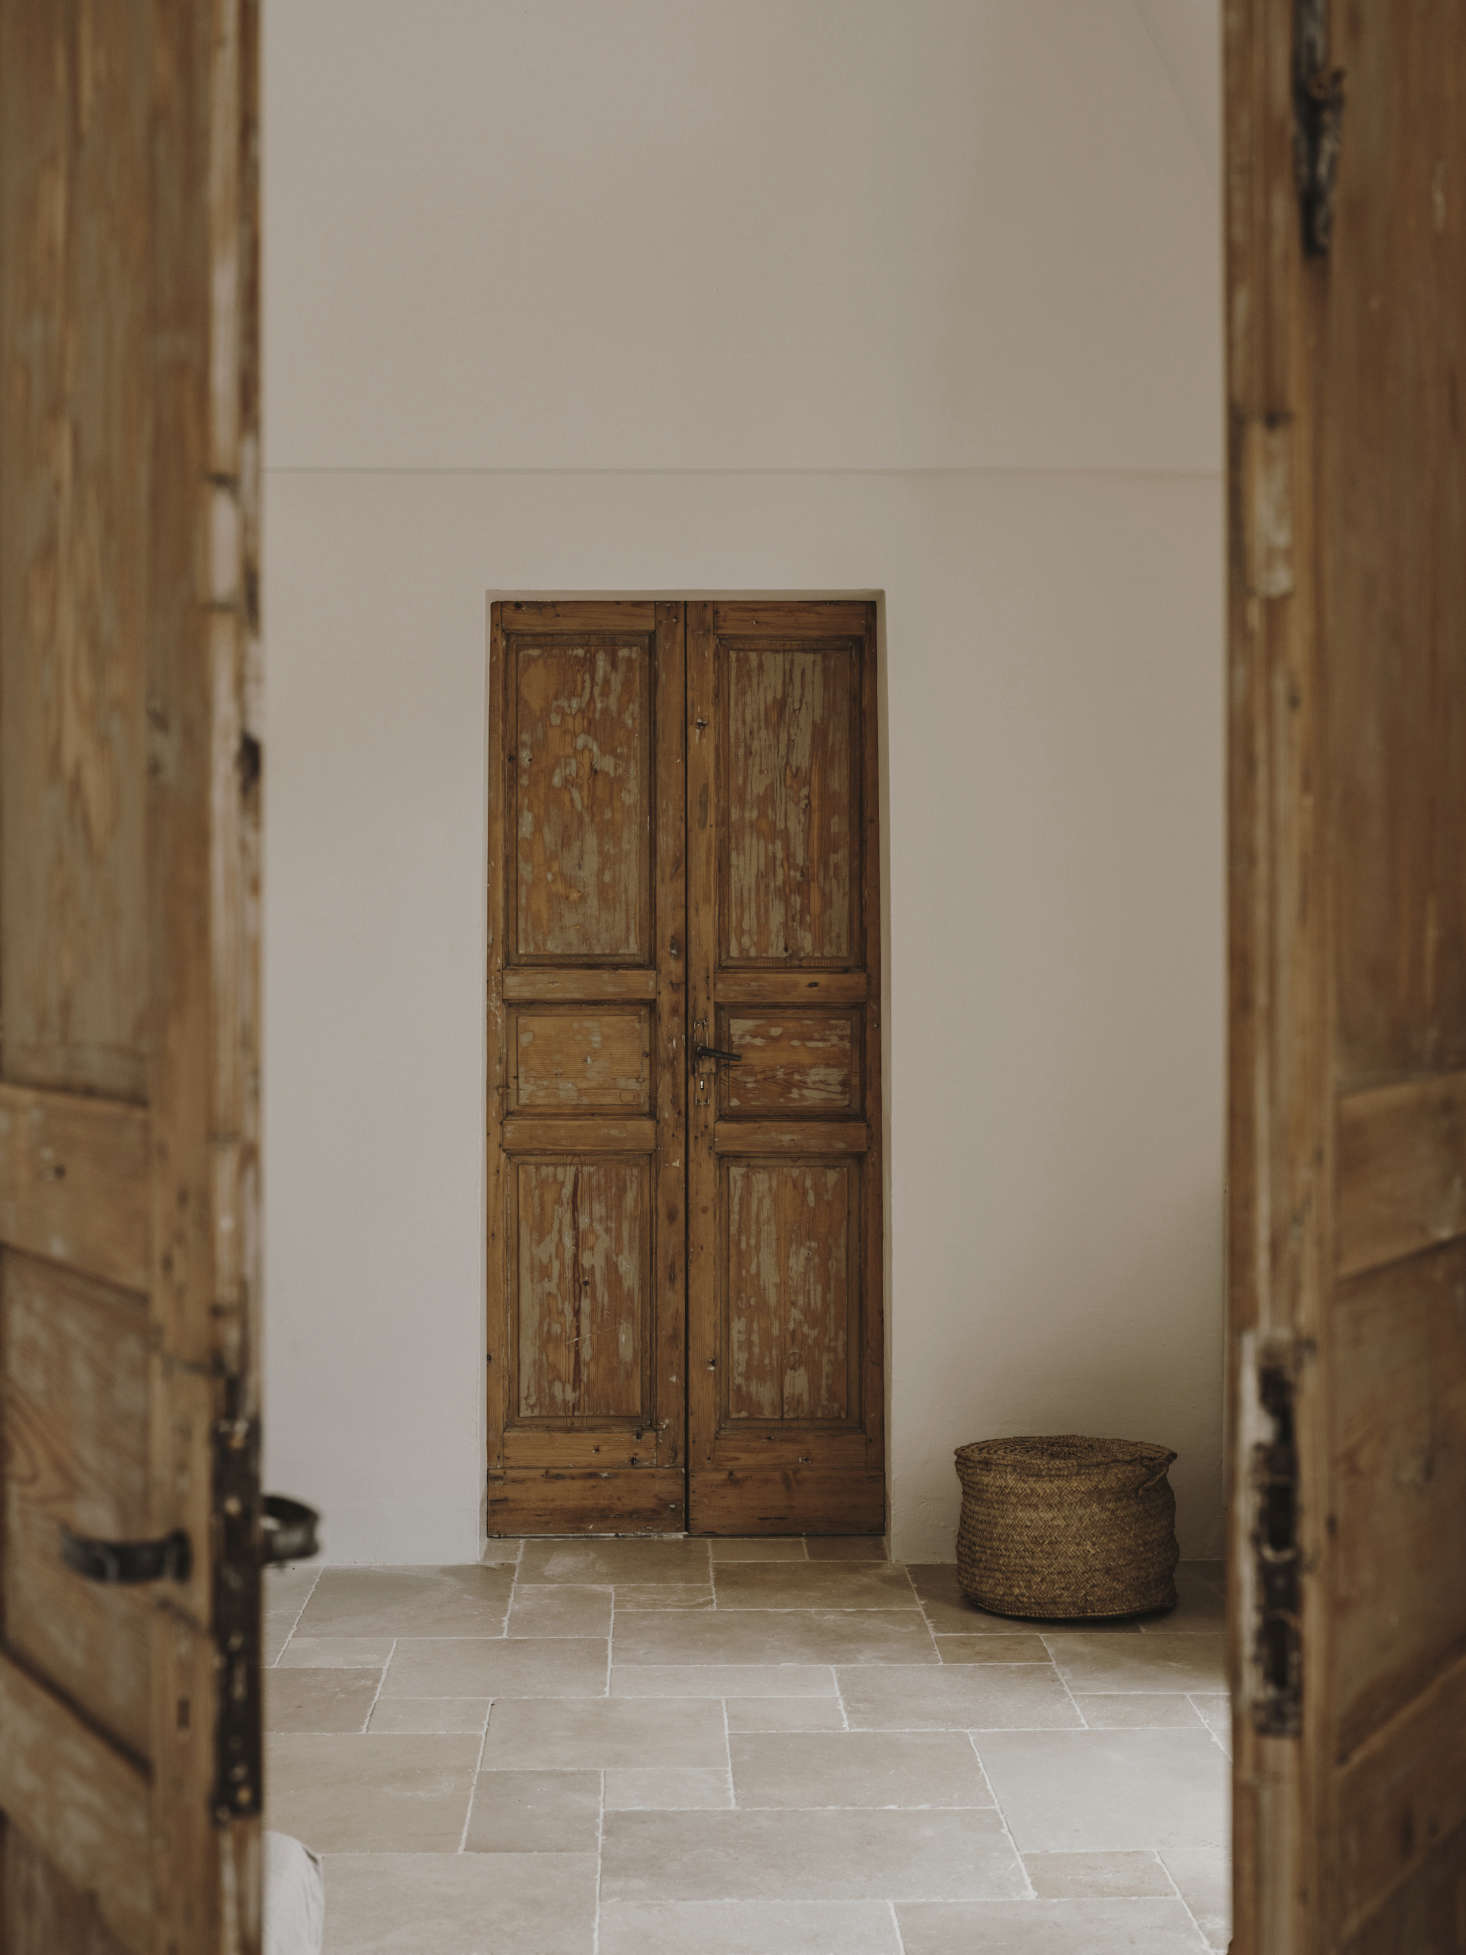 The double wooden doors throughout have plenty of patina.